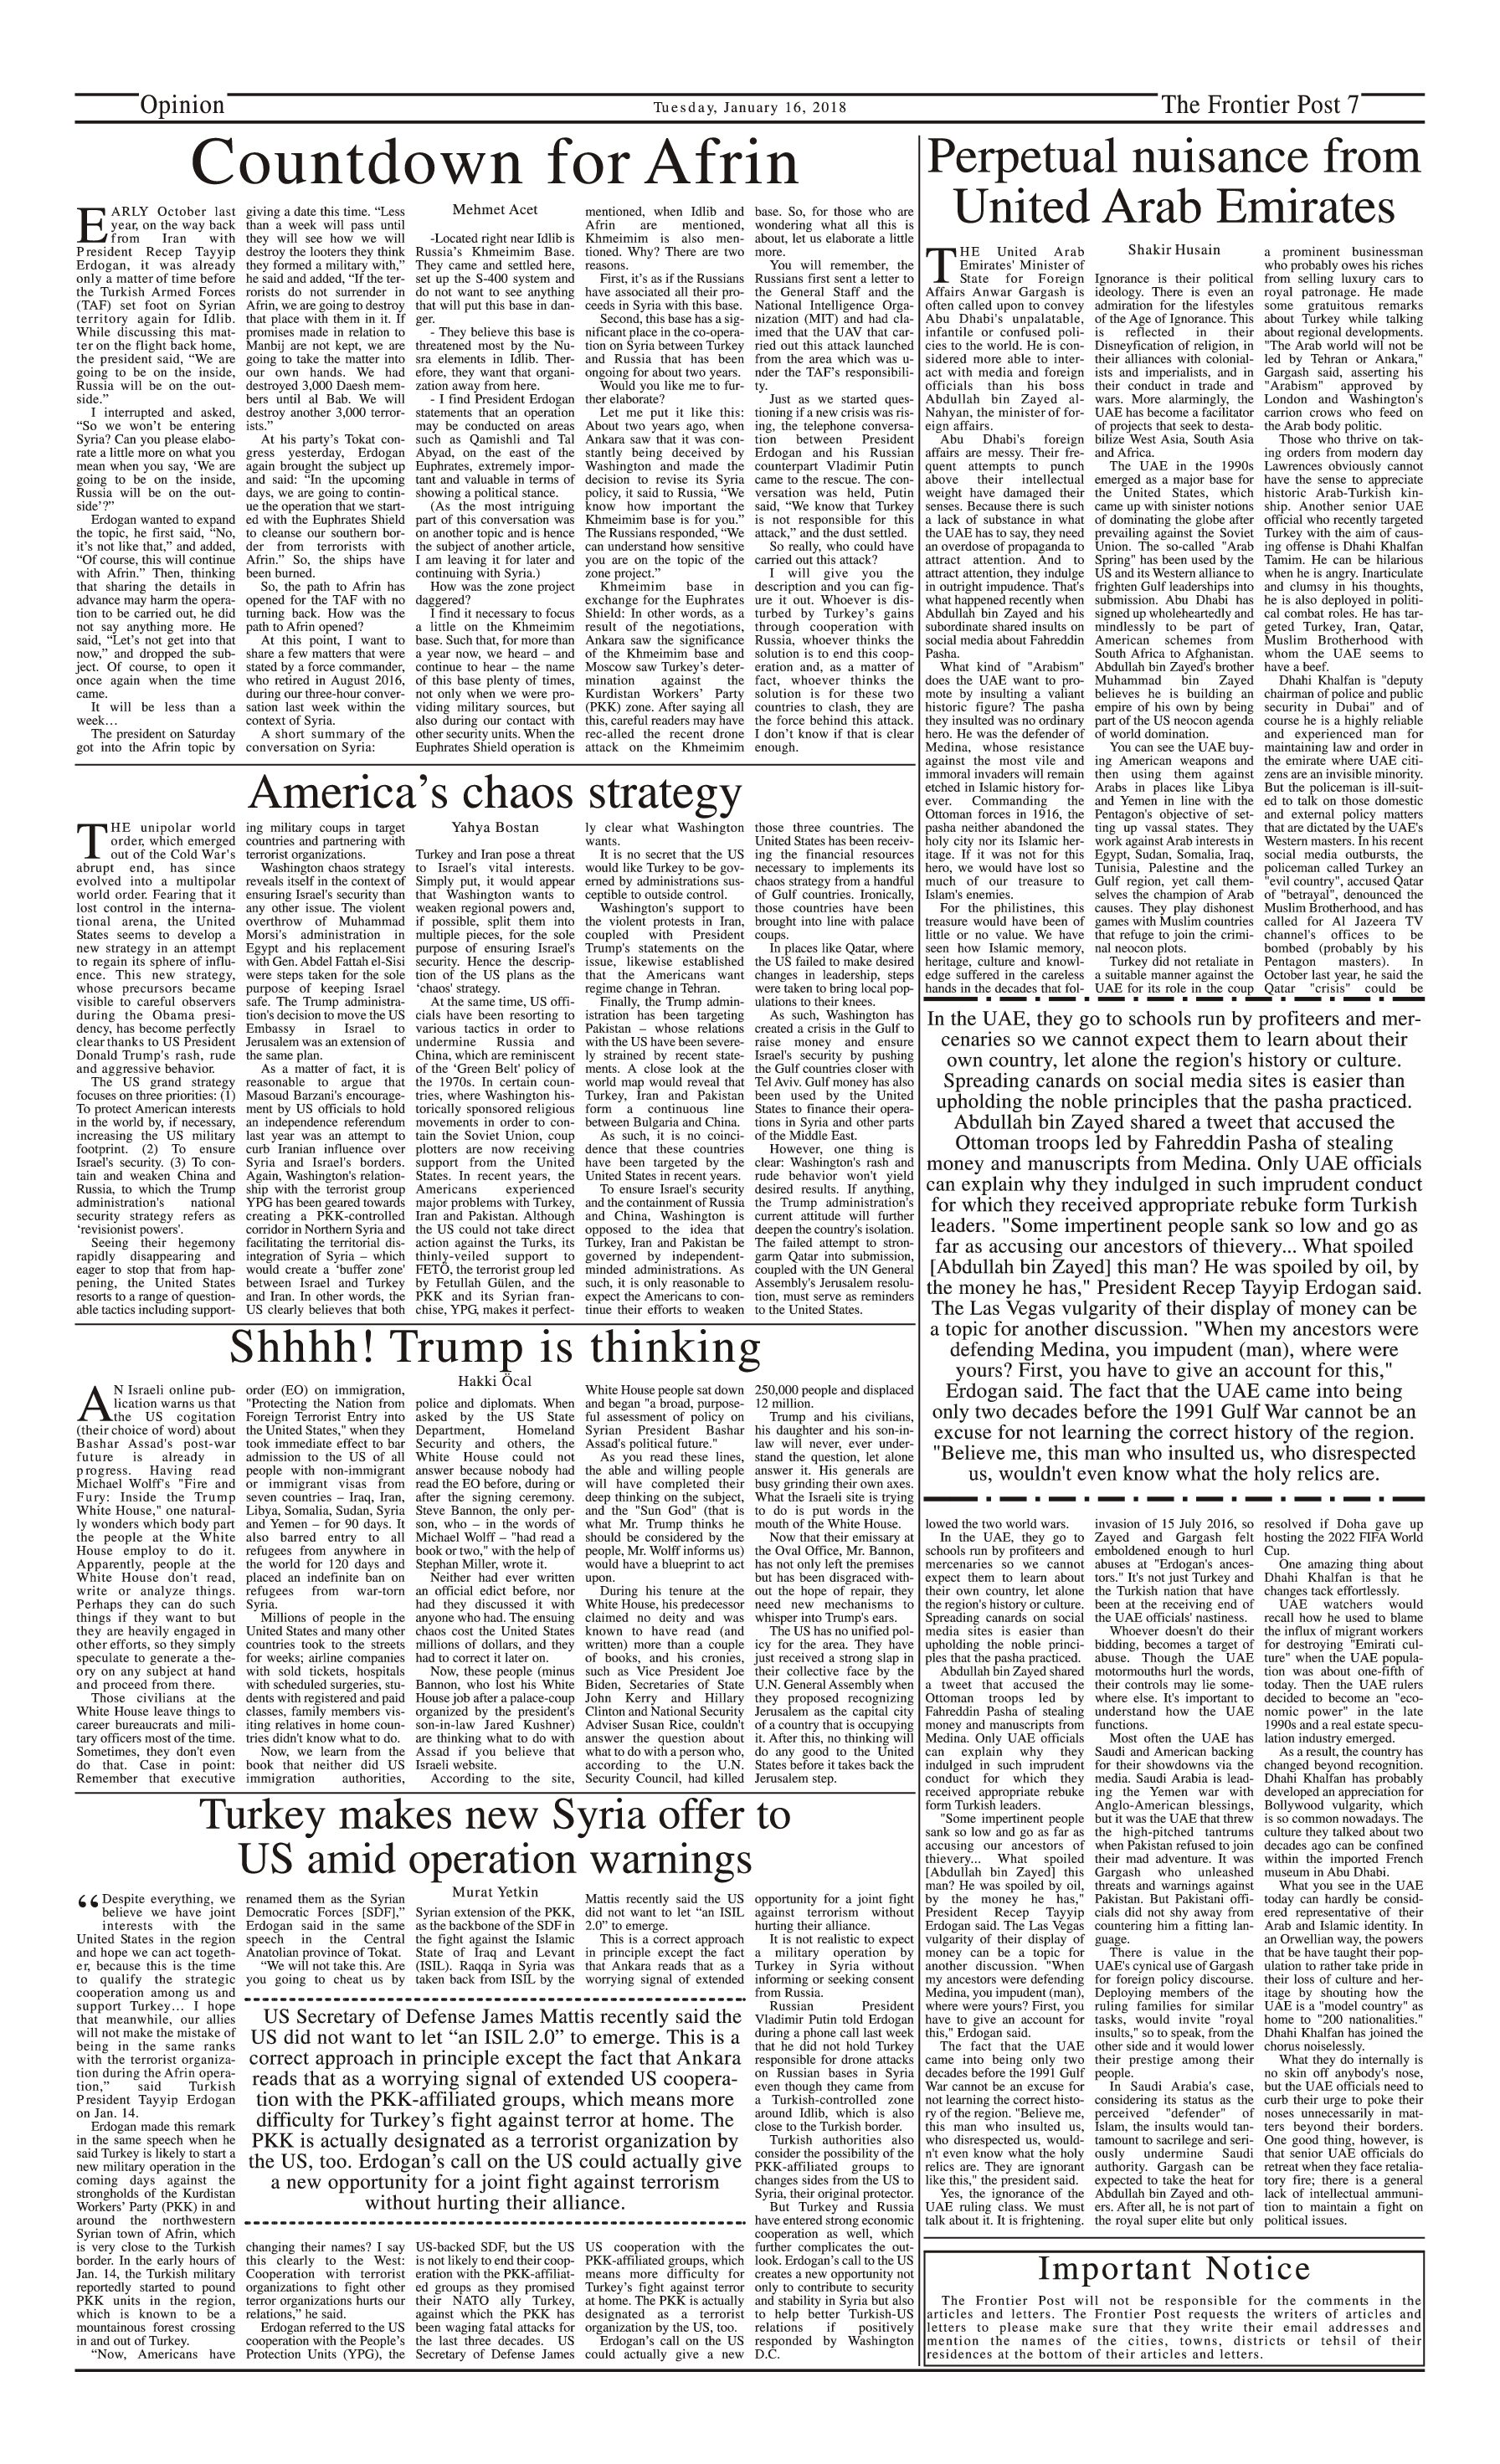 Opinion Page 16-1